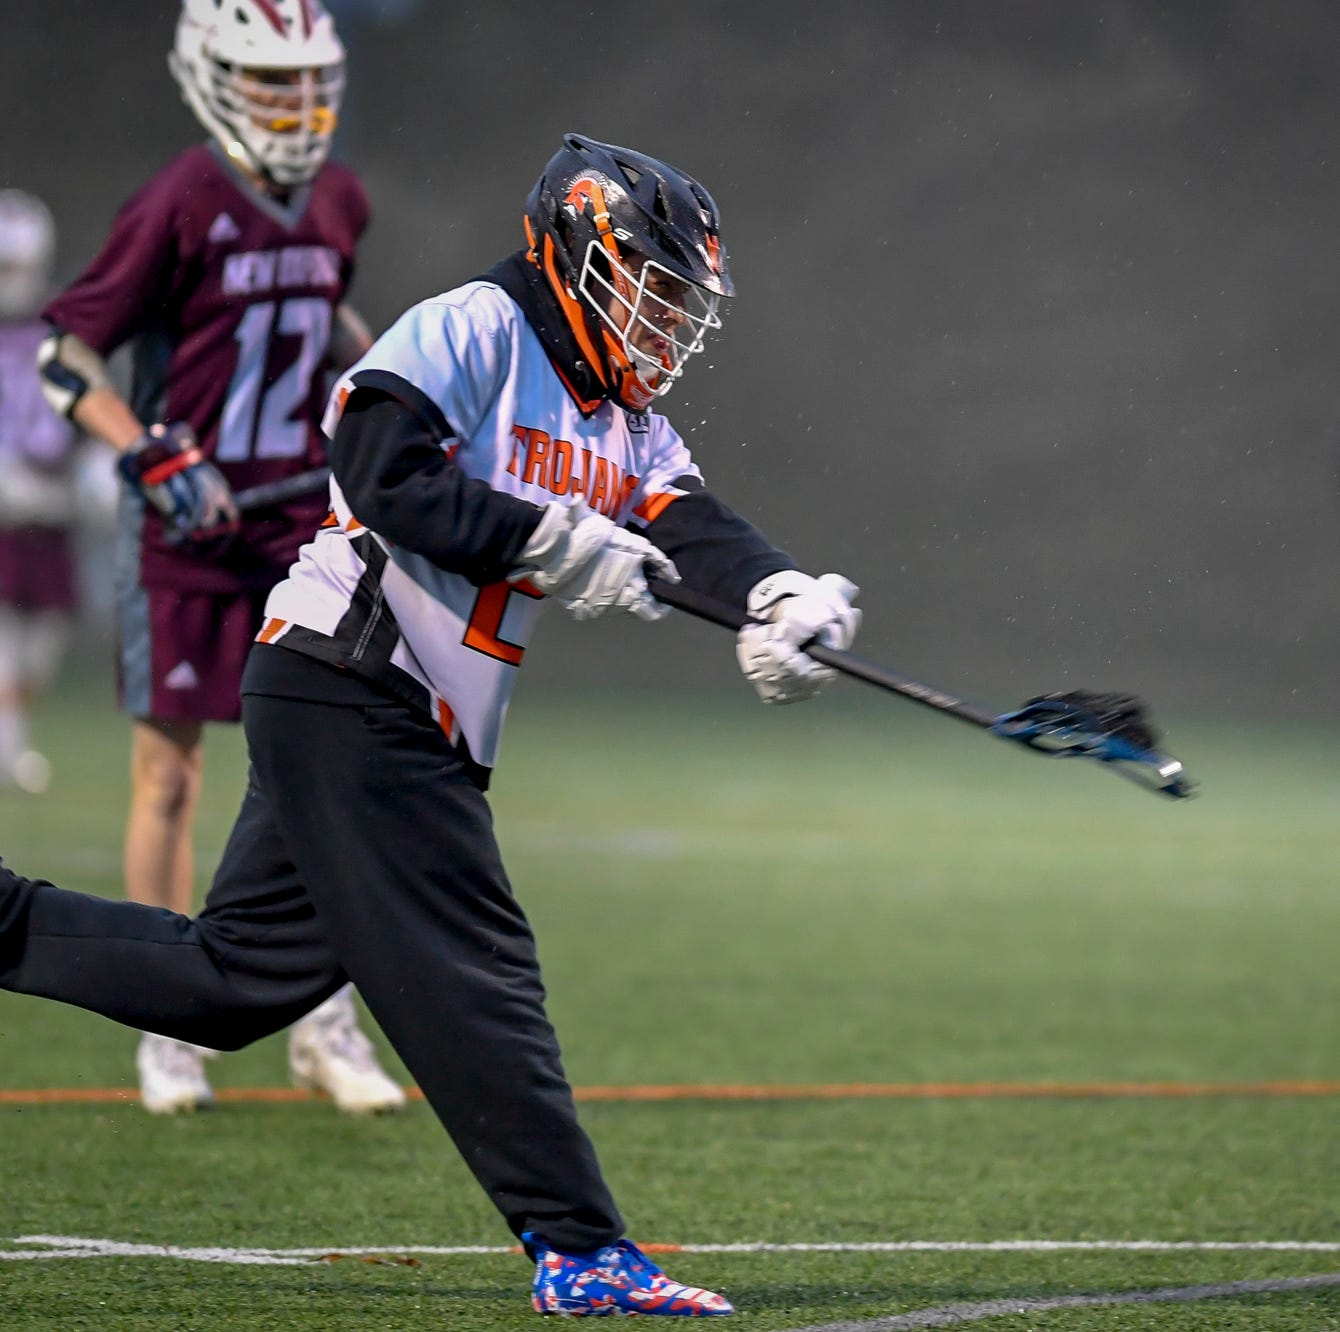 Suburban lacrosse coach beams with pride after shorthanded, weary team suffers 1-goal loss